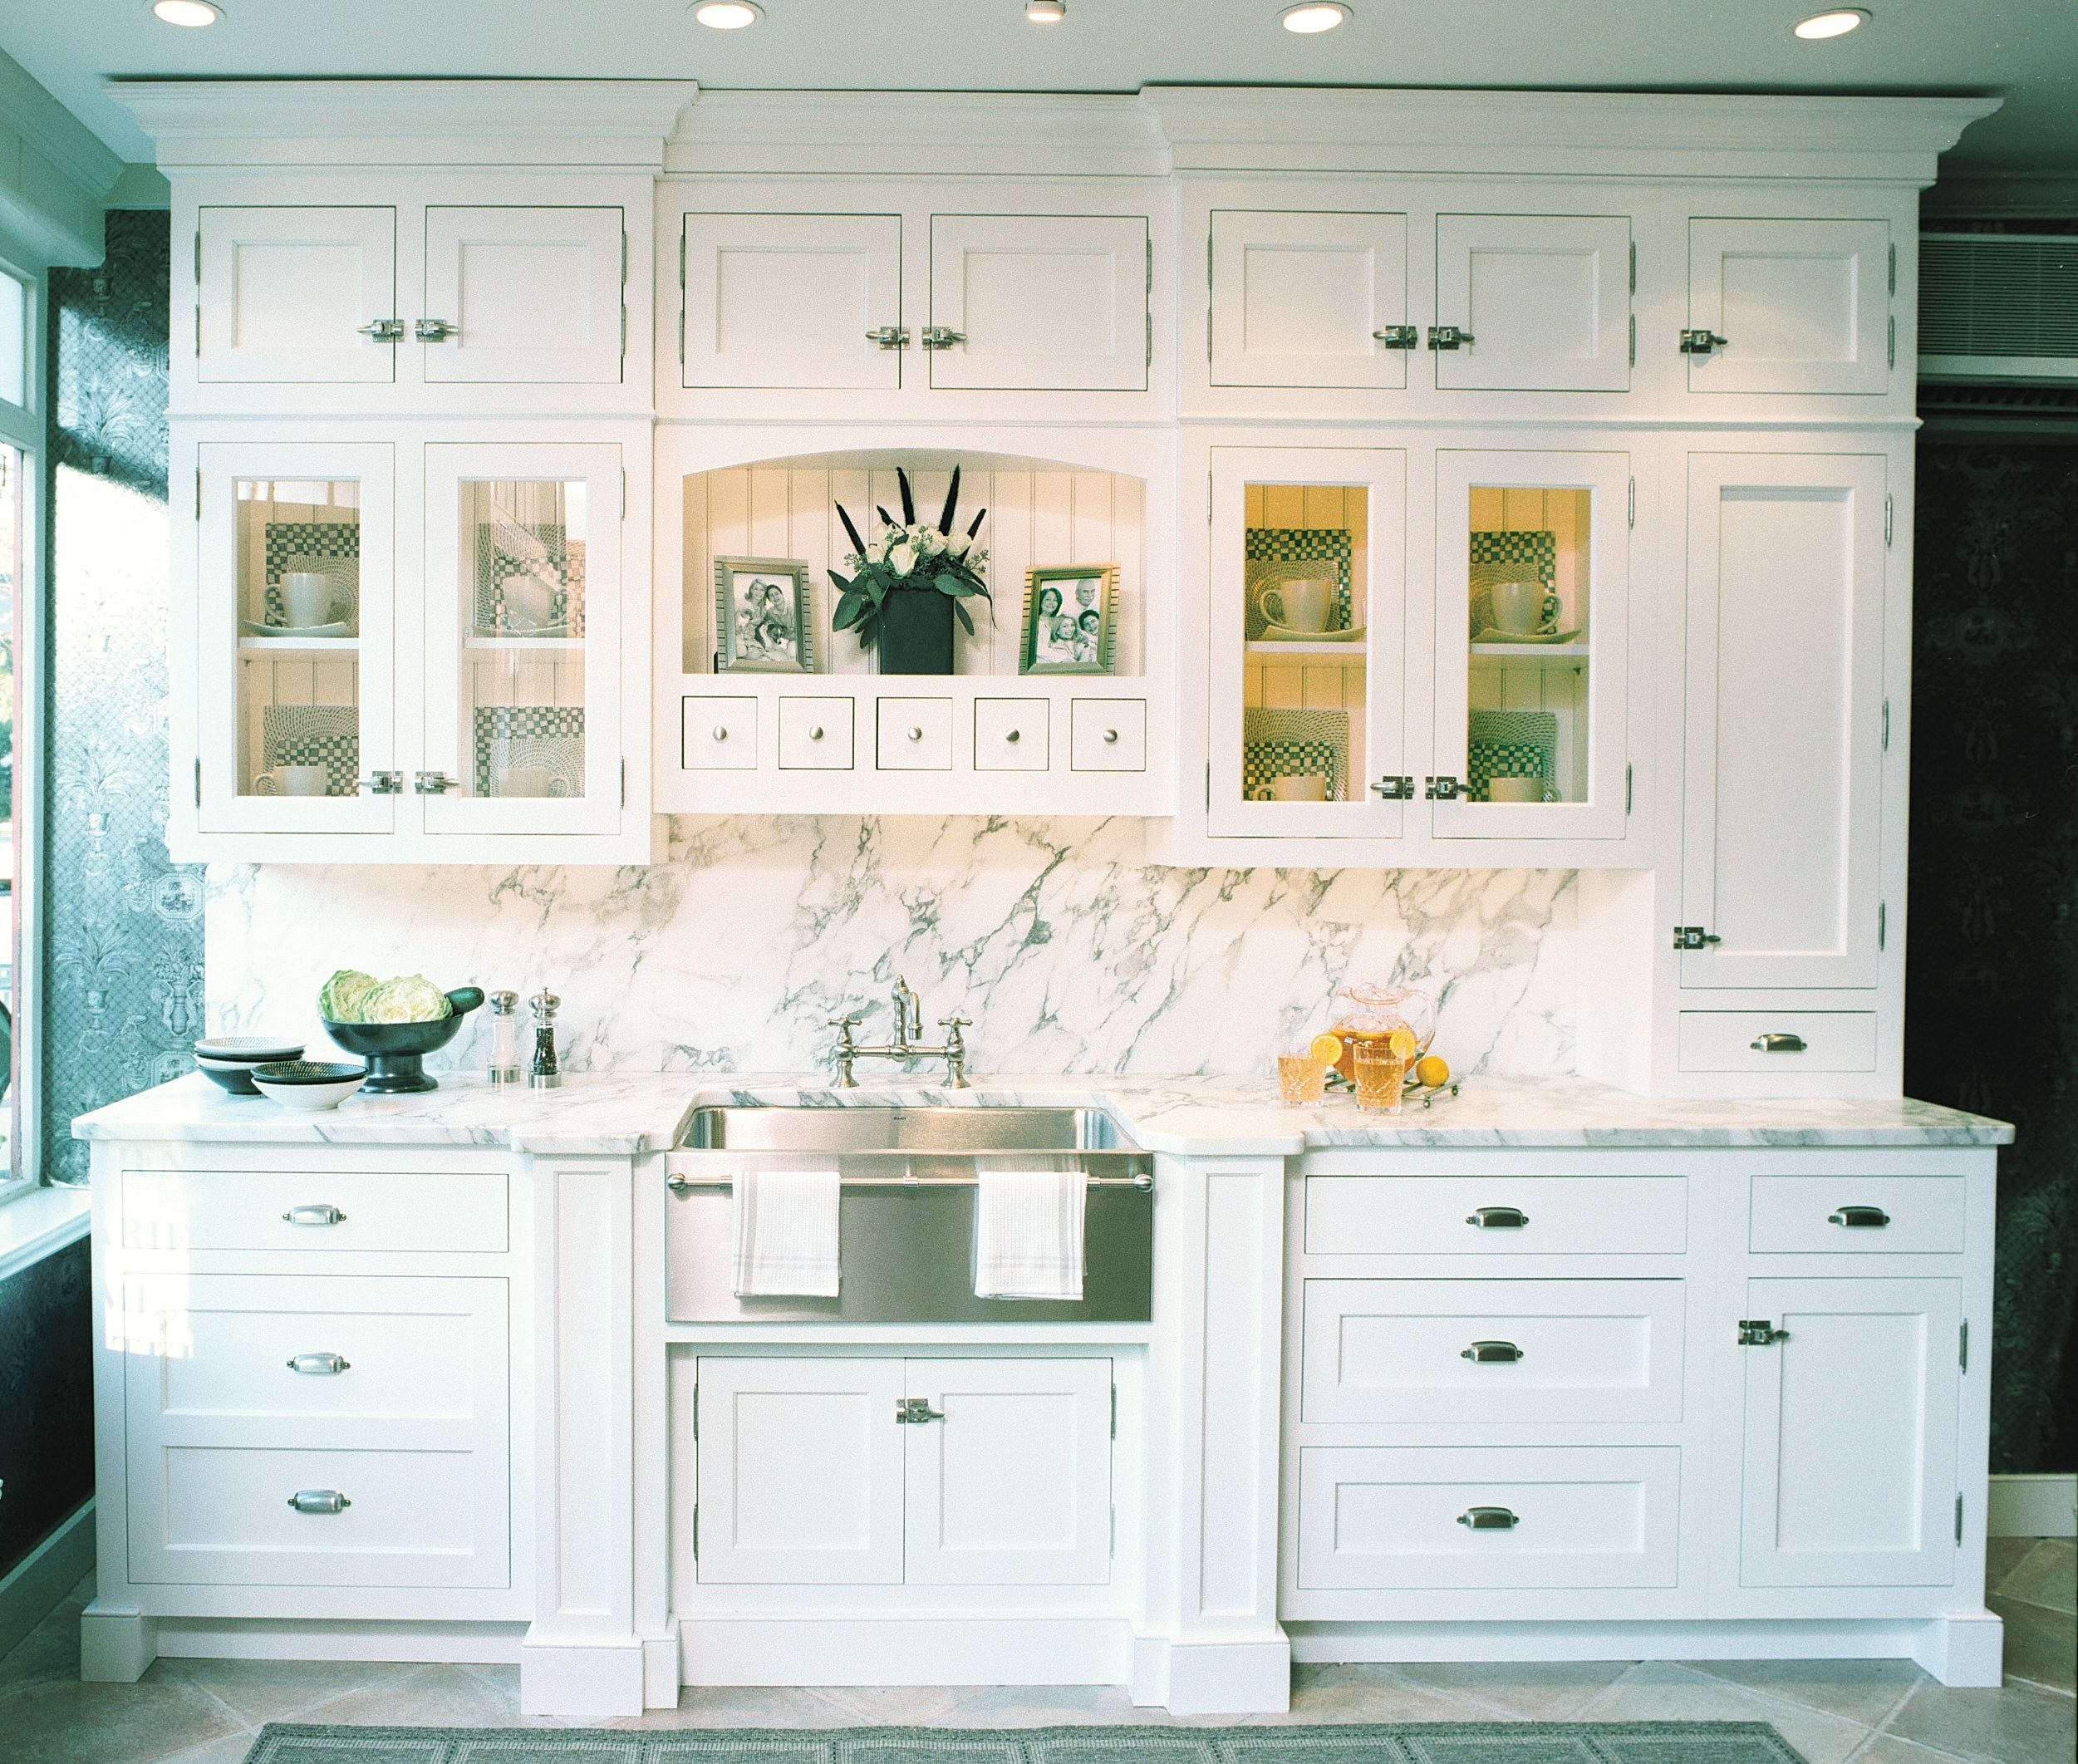 All About Kitchen Cabinets | Countertop, Kitchens and Kitchen design